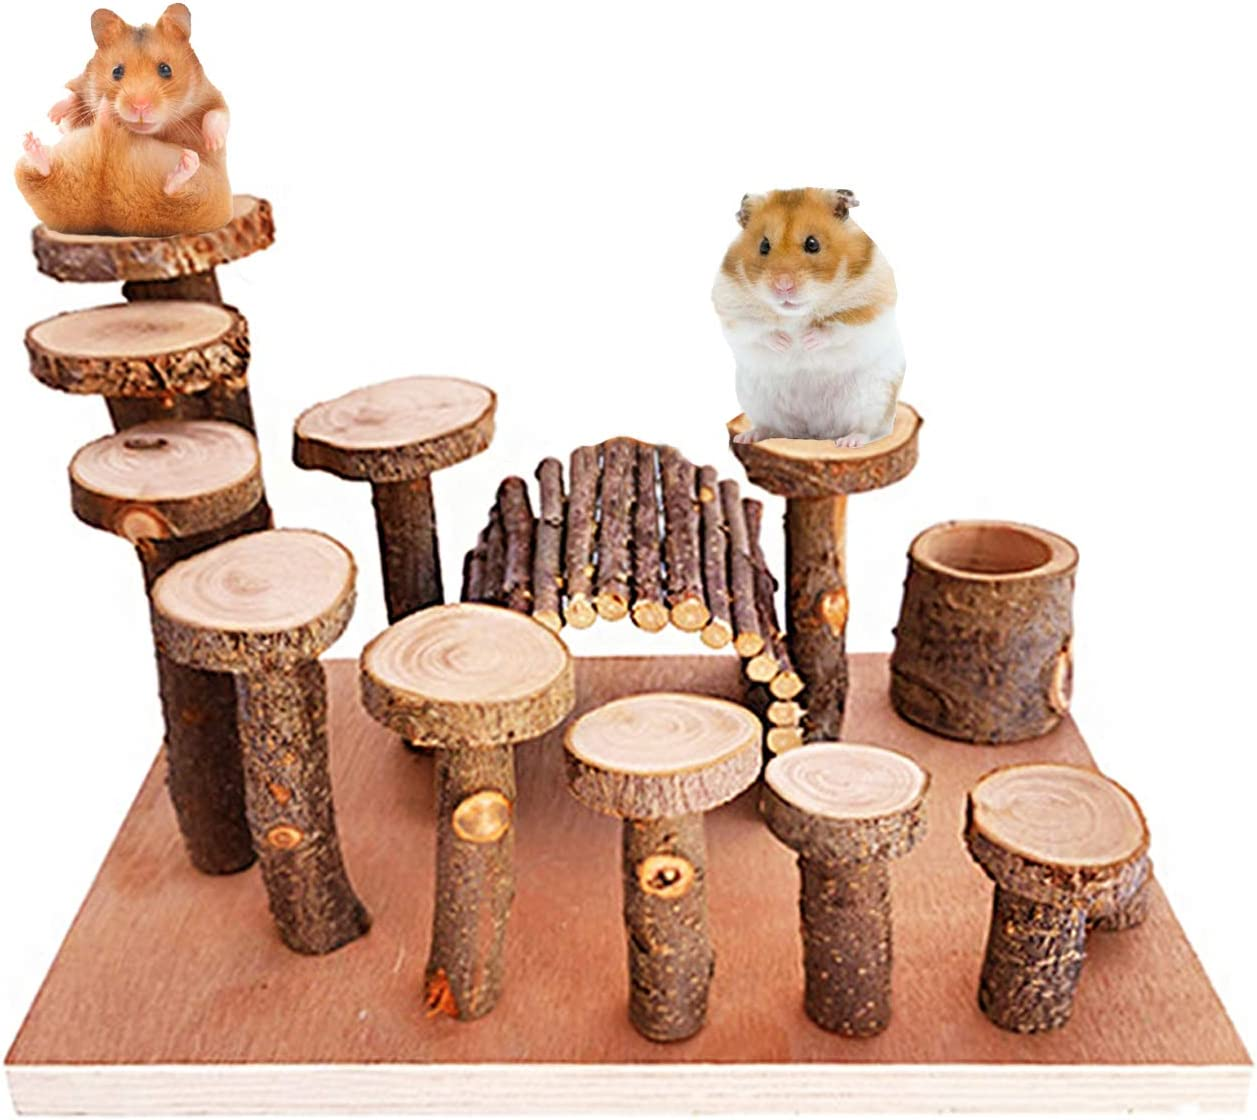 Linifar Hamster Playground Wooden, Small Animal Activity Toys Set – Rat Playground Platform Climbing Ladder/Ramp Bridge/Food Bowl Chew Toy for Syrian Hamster Gerbil Mouse Chinchilla